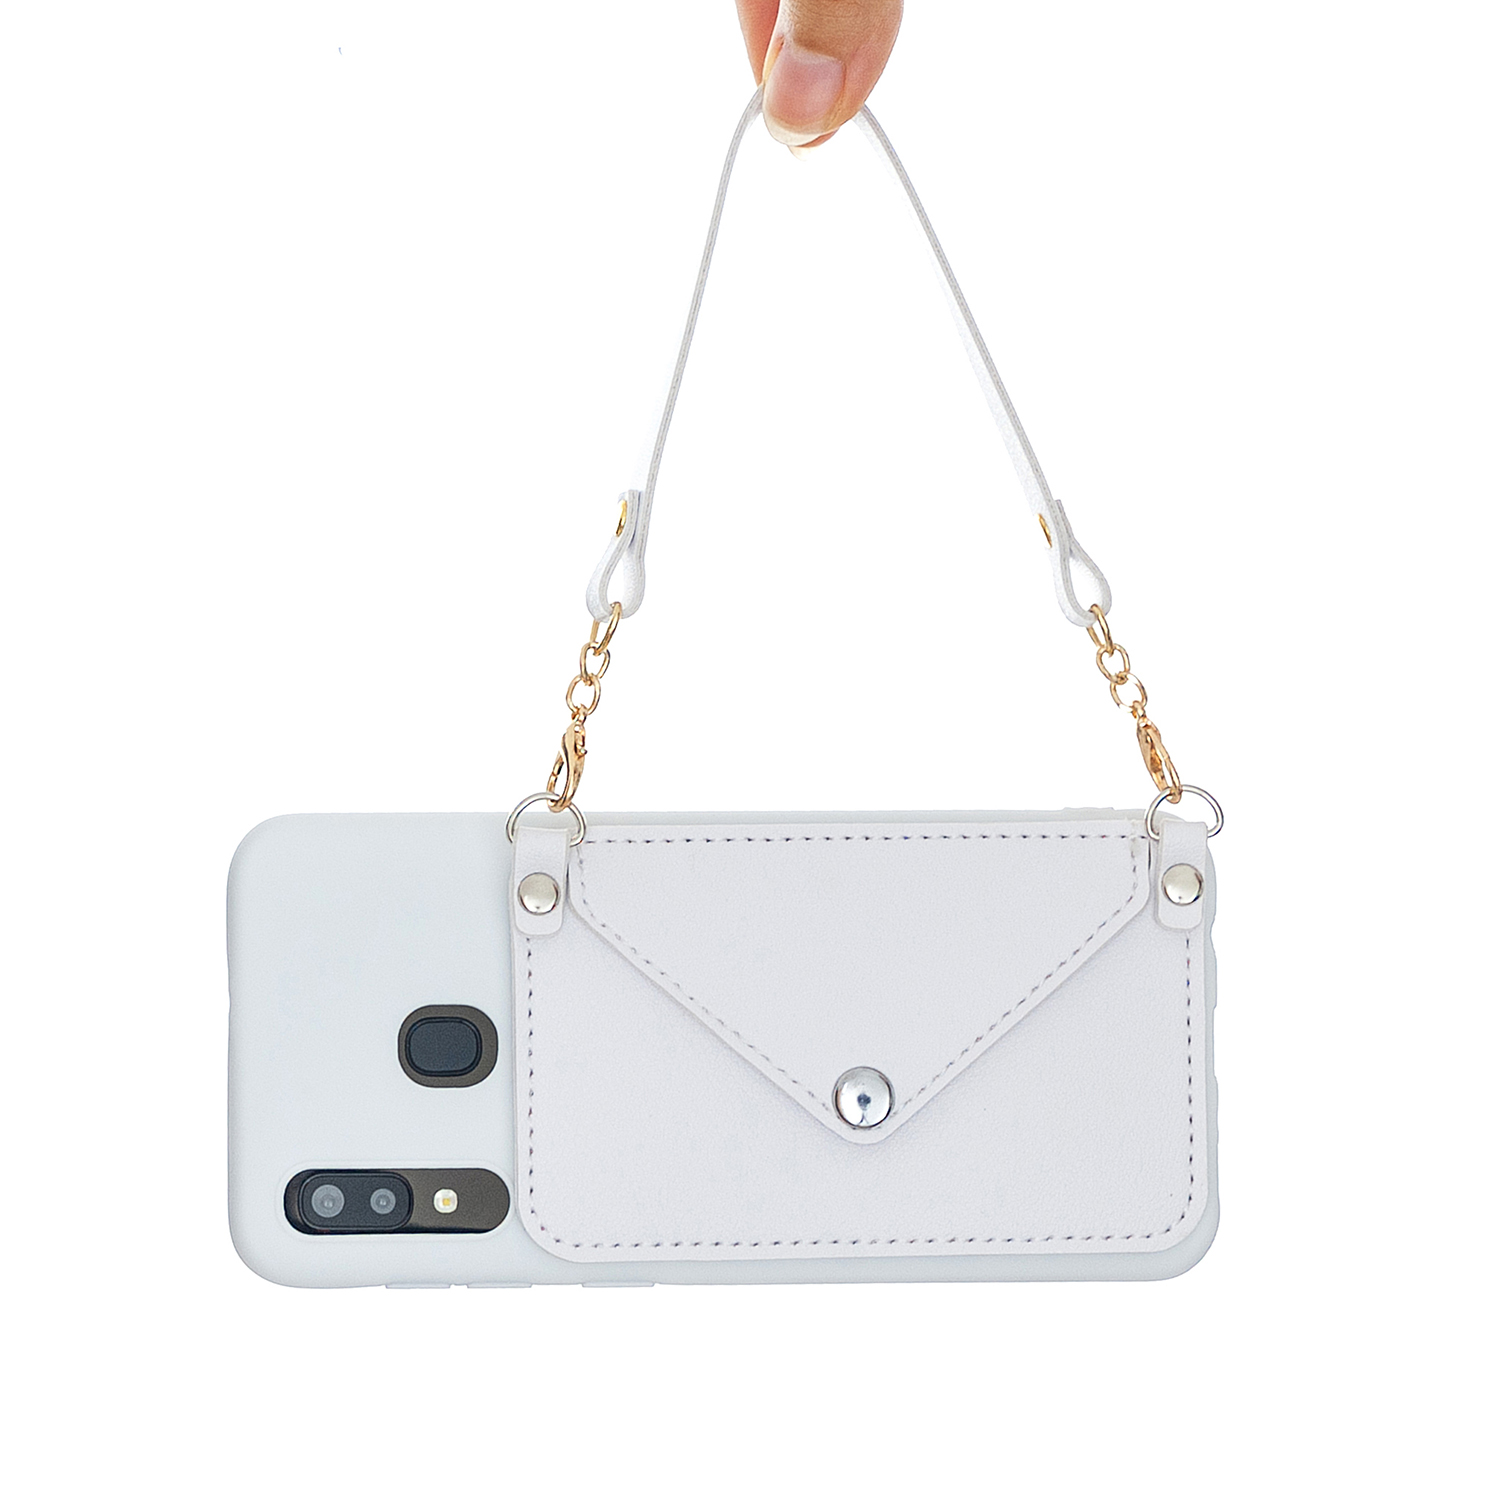 For HUAWEI Y5 2018/2019/Y6 2019/Y7 2019/PSMART Z/Y9 2019 Mobile Phone Cover with Pu Card Holder + Hand Rope + Straddle Rope white